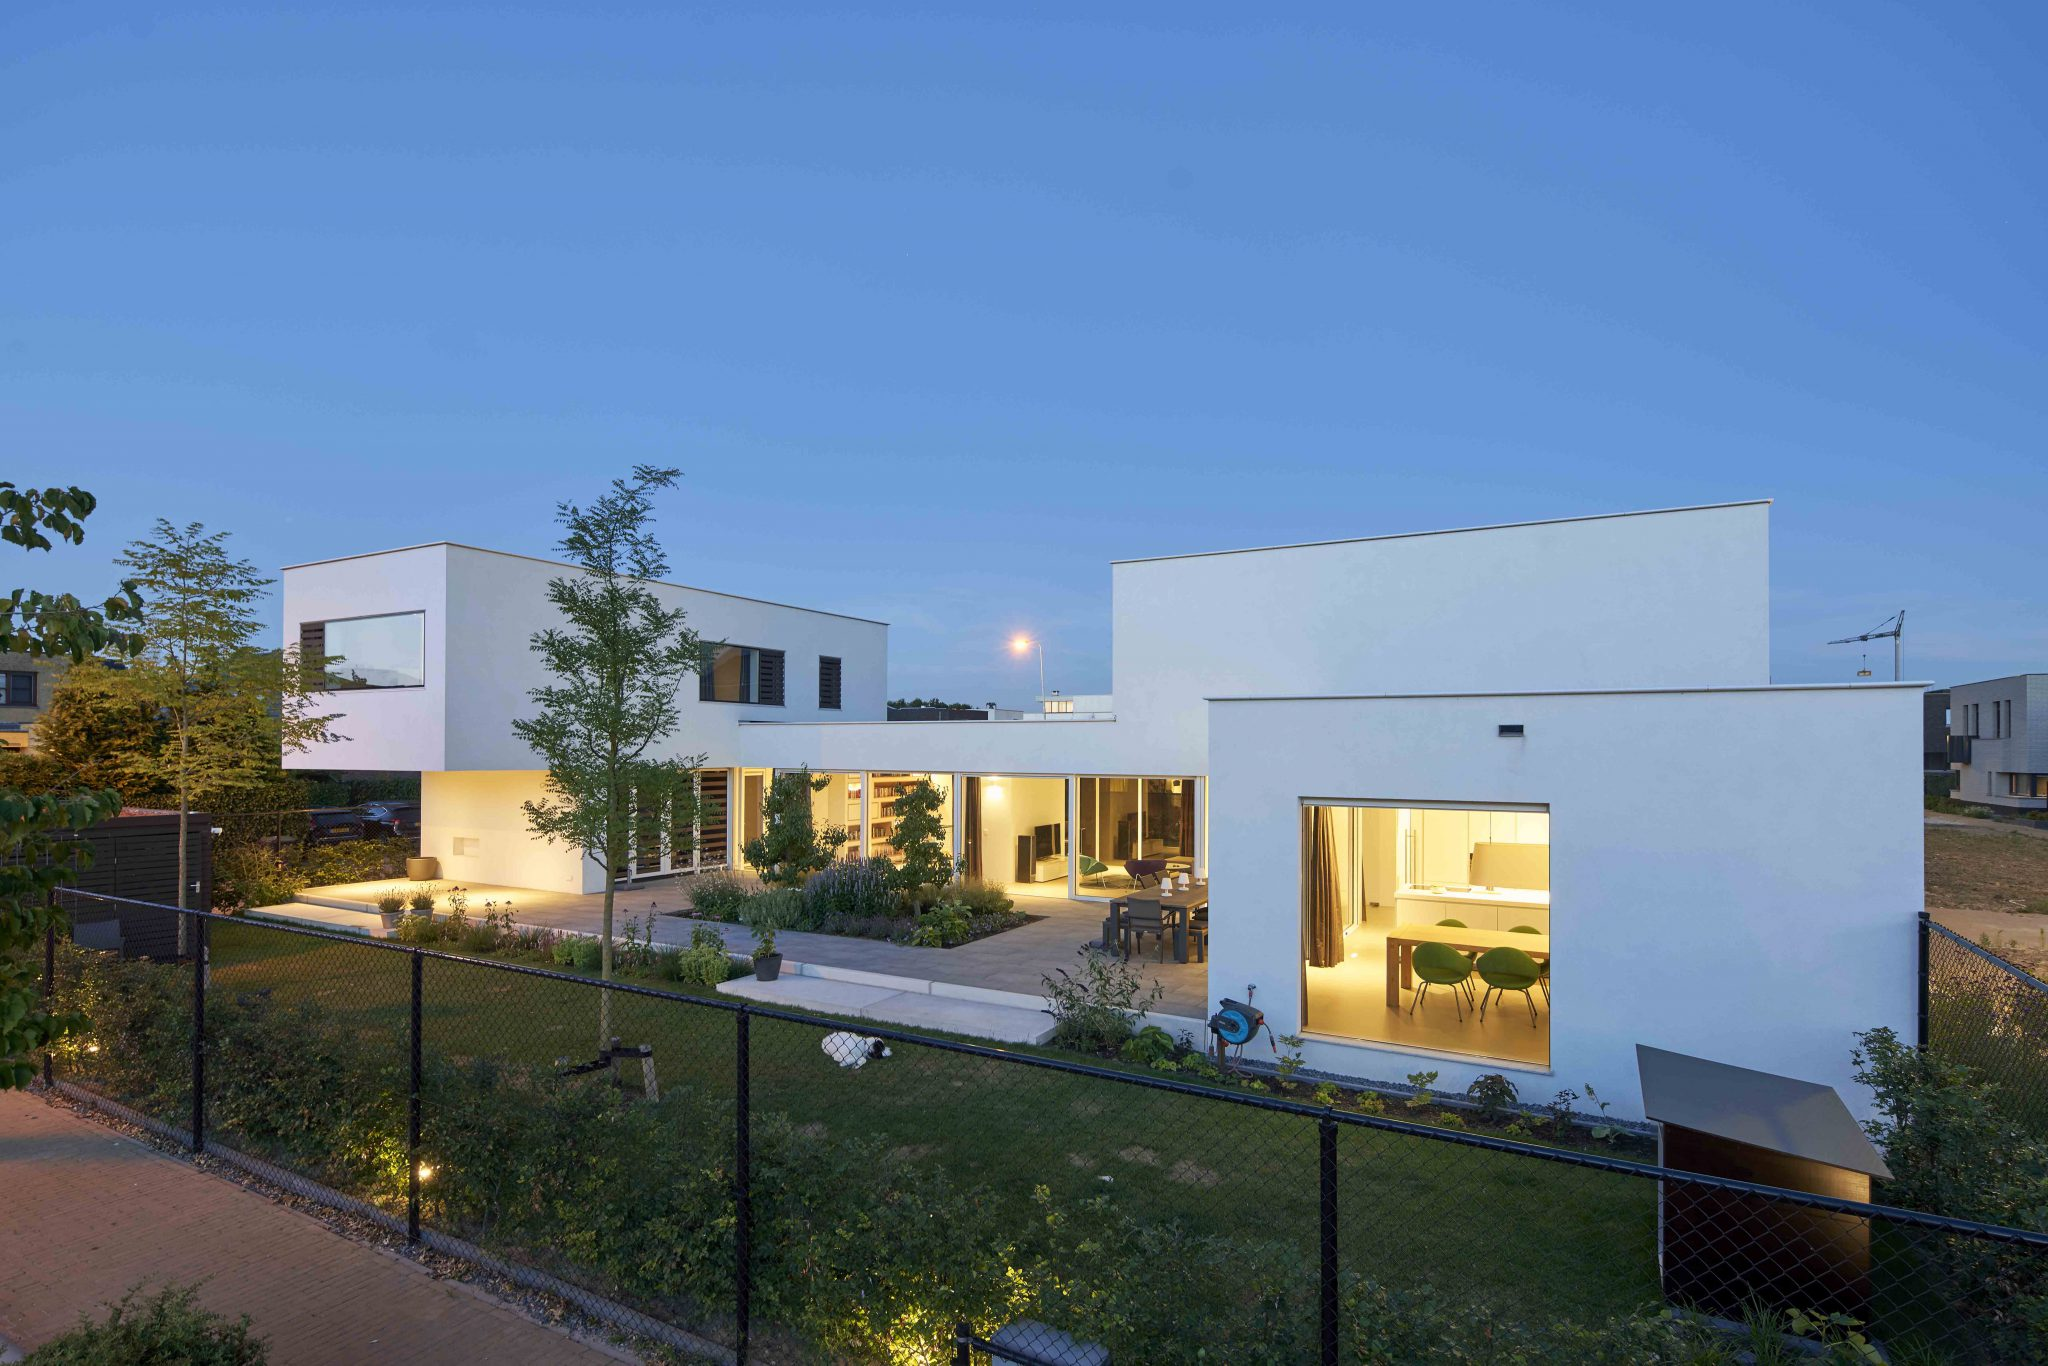 detached family house Waterrijk Eindhoven JMW architects